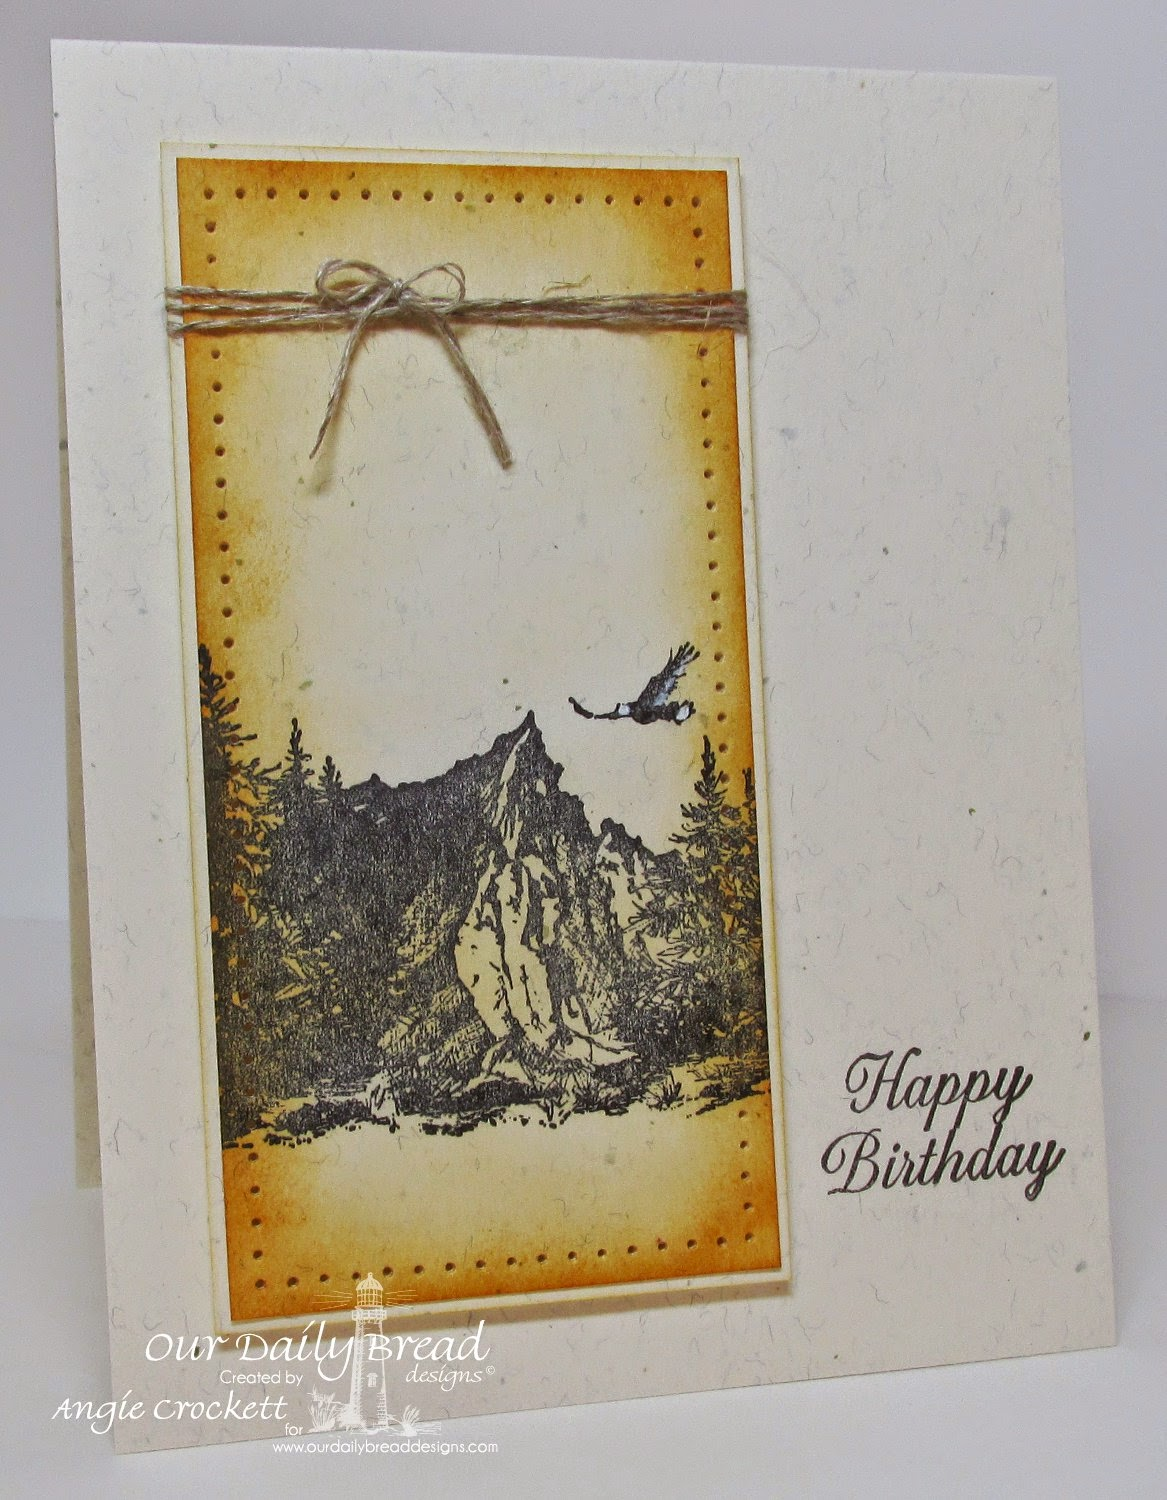 ODBD Keep Climbing, Ornate Border Sentiments, Card Designer Angie Crockett